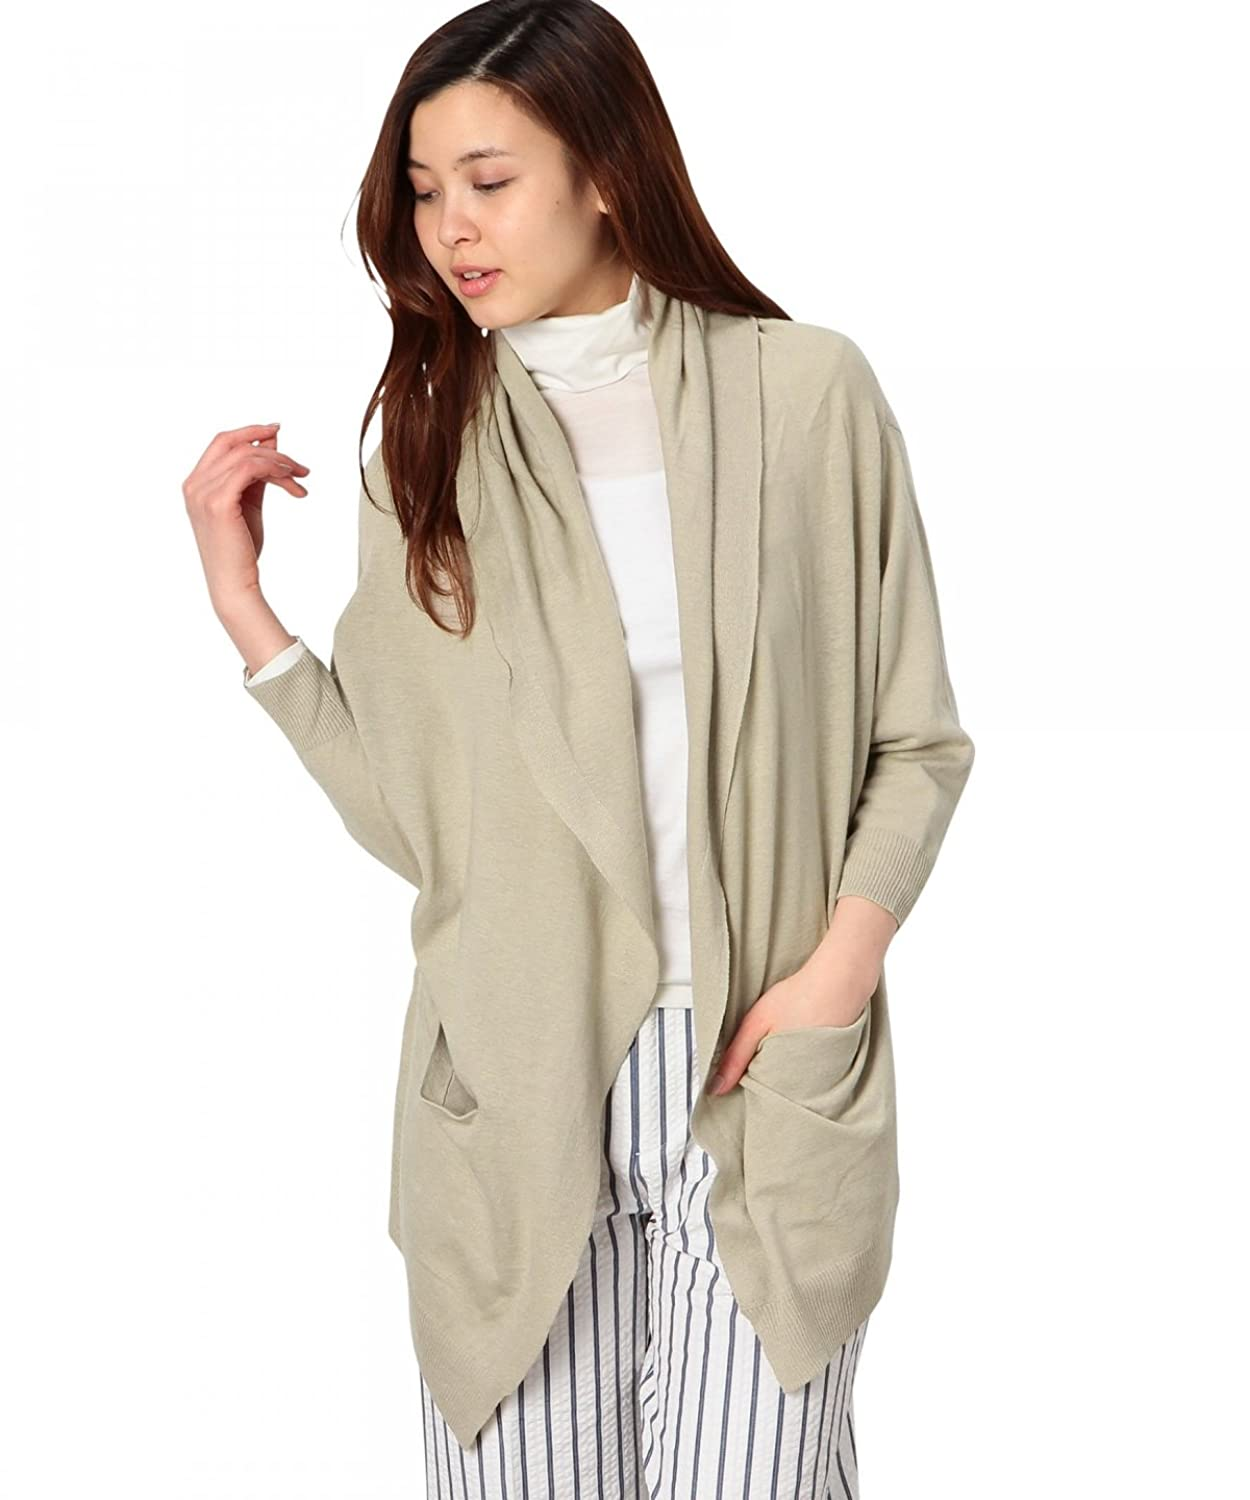 Amazon.co.jp: (ユナイテッドアローズグリーンレーベルリラクシング) UNITED ARROWS green label relaxing GC LI/C GOWN CD 36281810425 23 Beige フリー: 服&ファッション小物通販